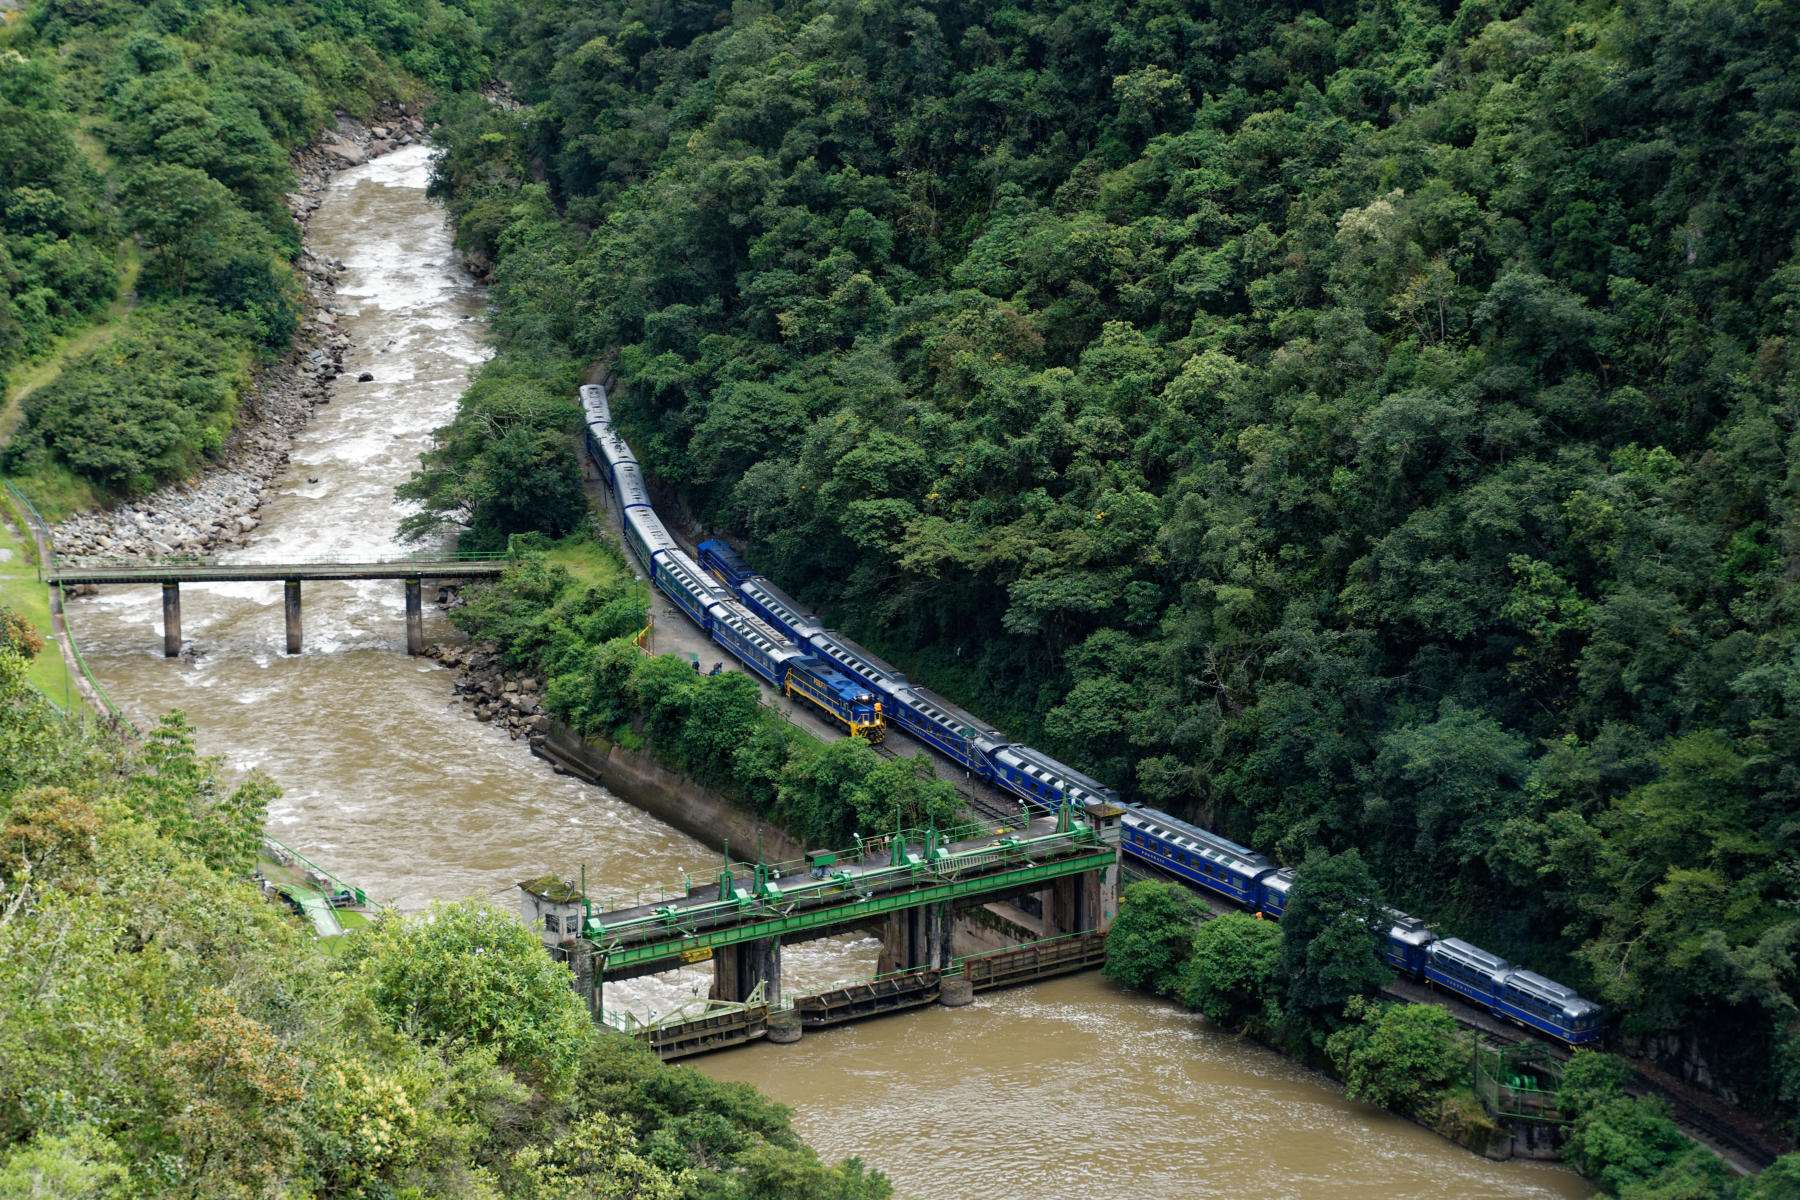 PeruRail Trains Crossing